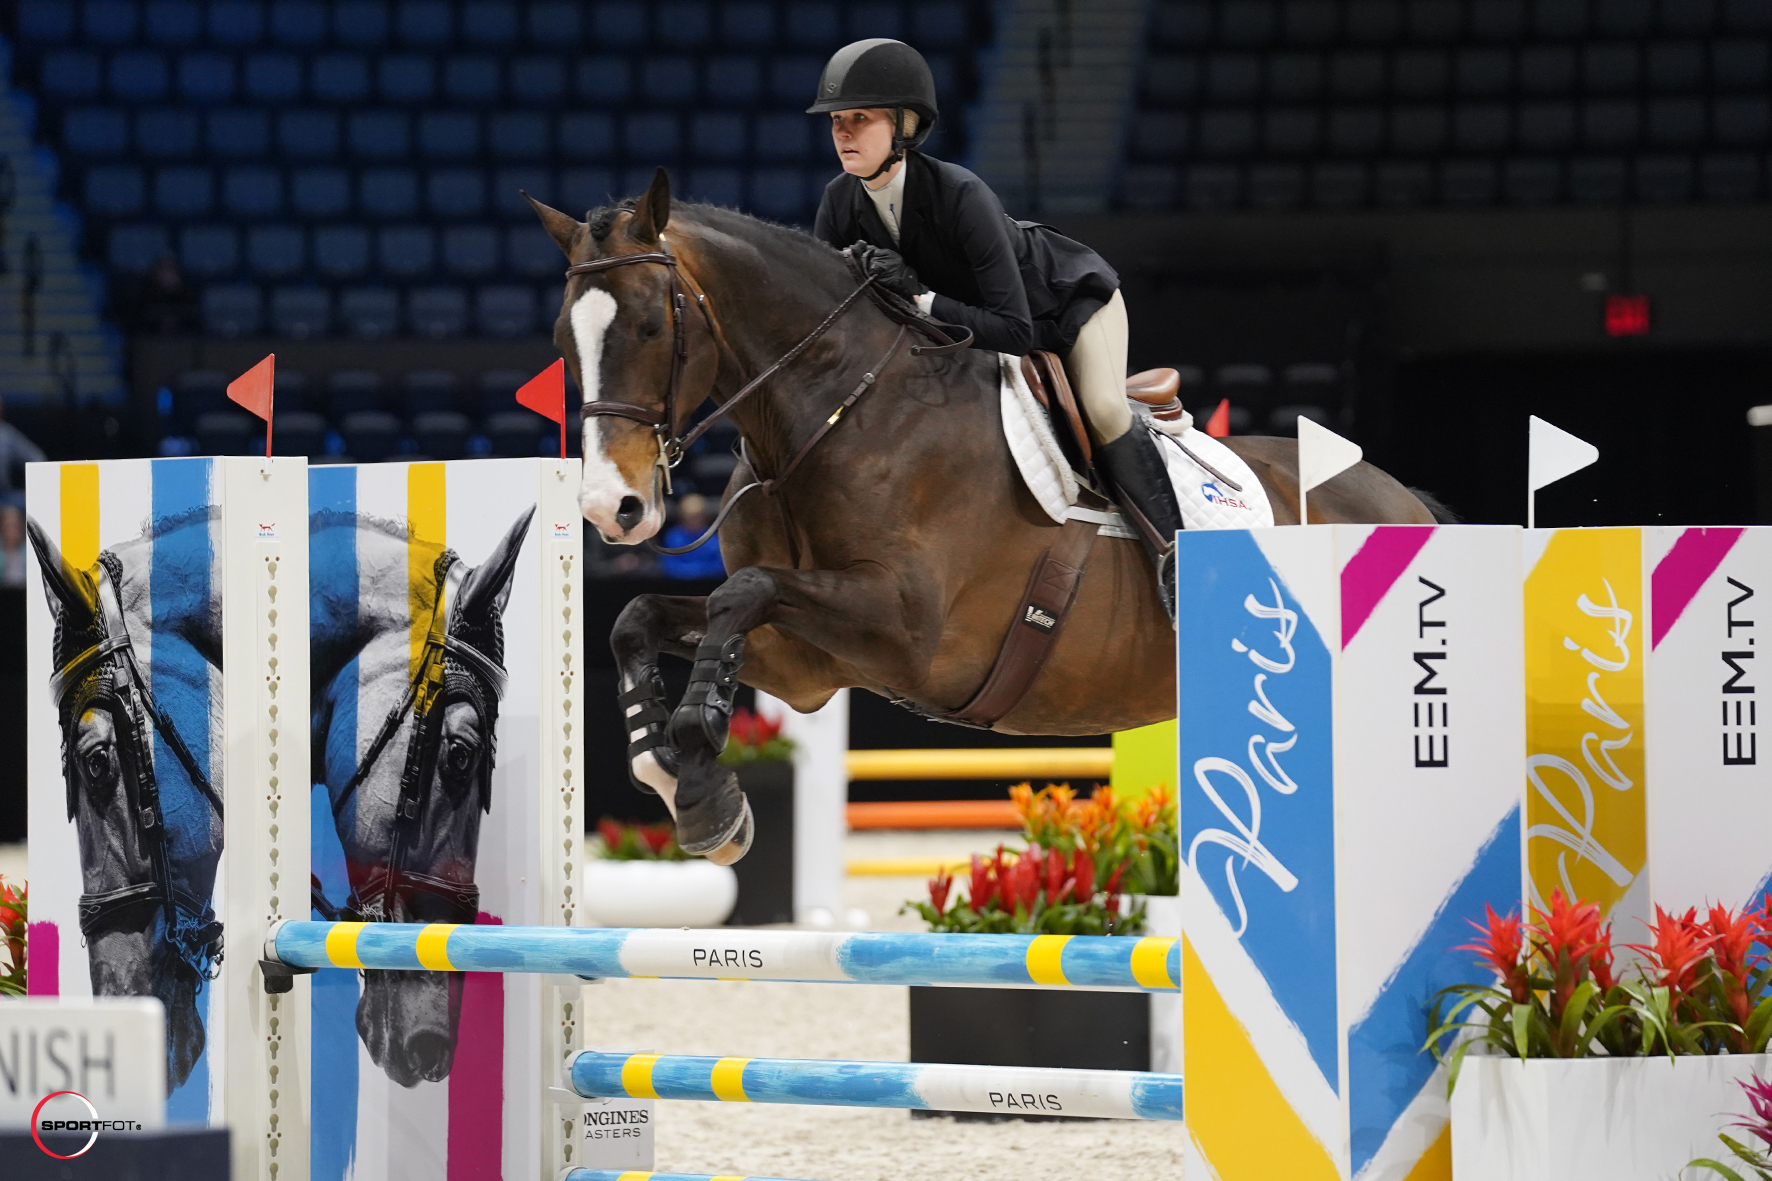 Thea Chafee and Renaissance, provided by Windham Hill. Photo by Sportfot